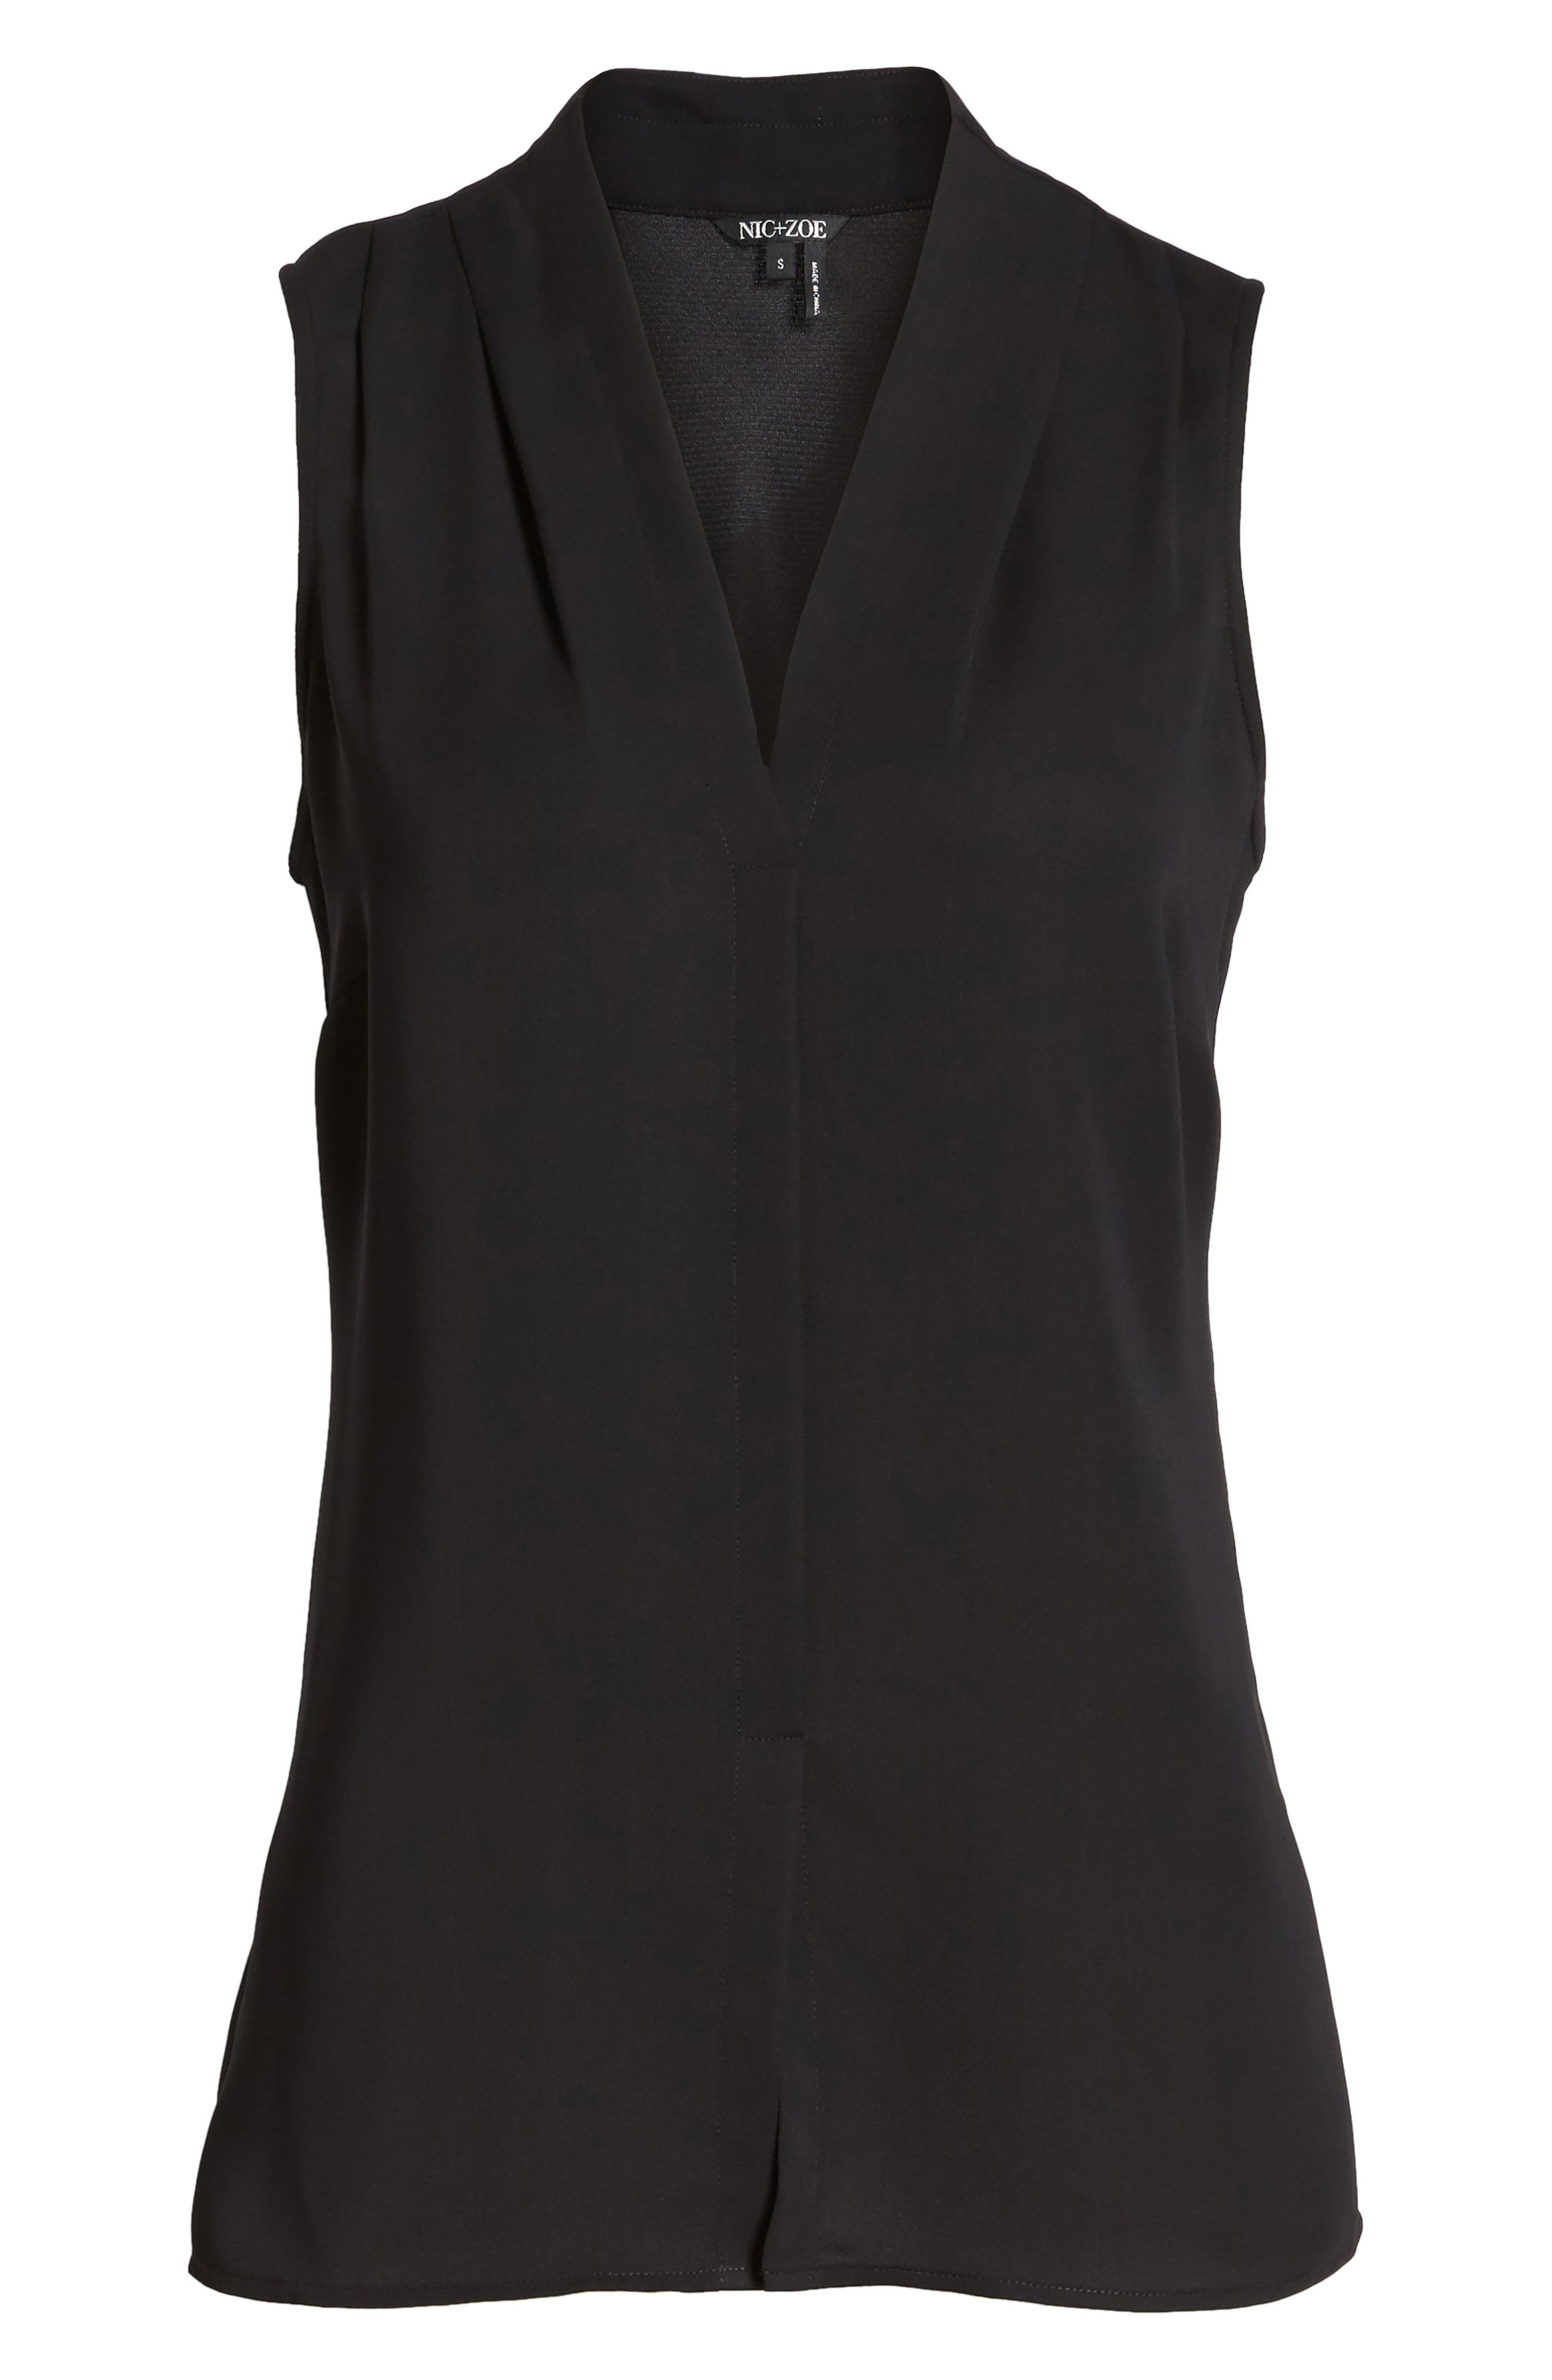 Day to Night Top,                             Alternate thumbnail 6, color,                             BLACK ONYX